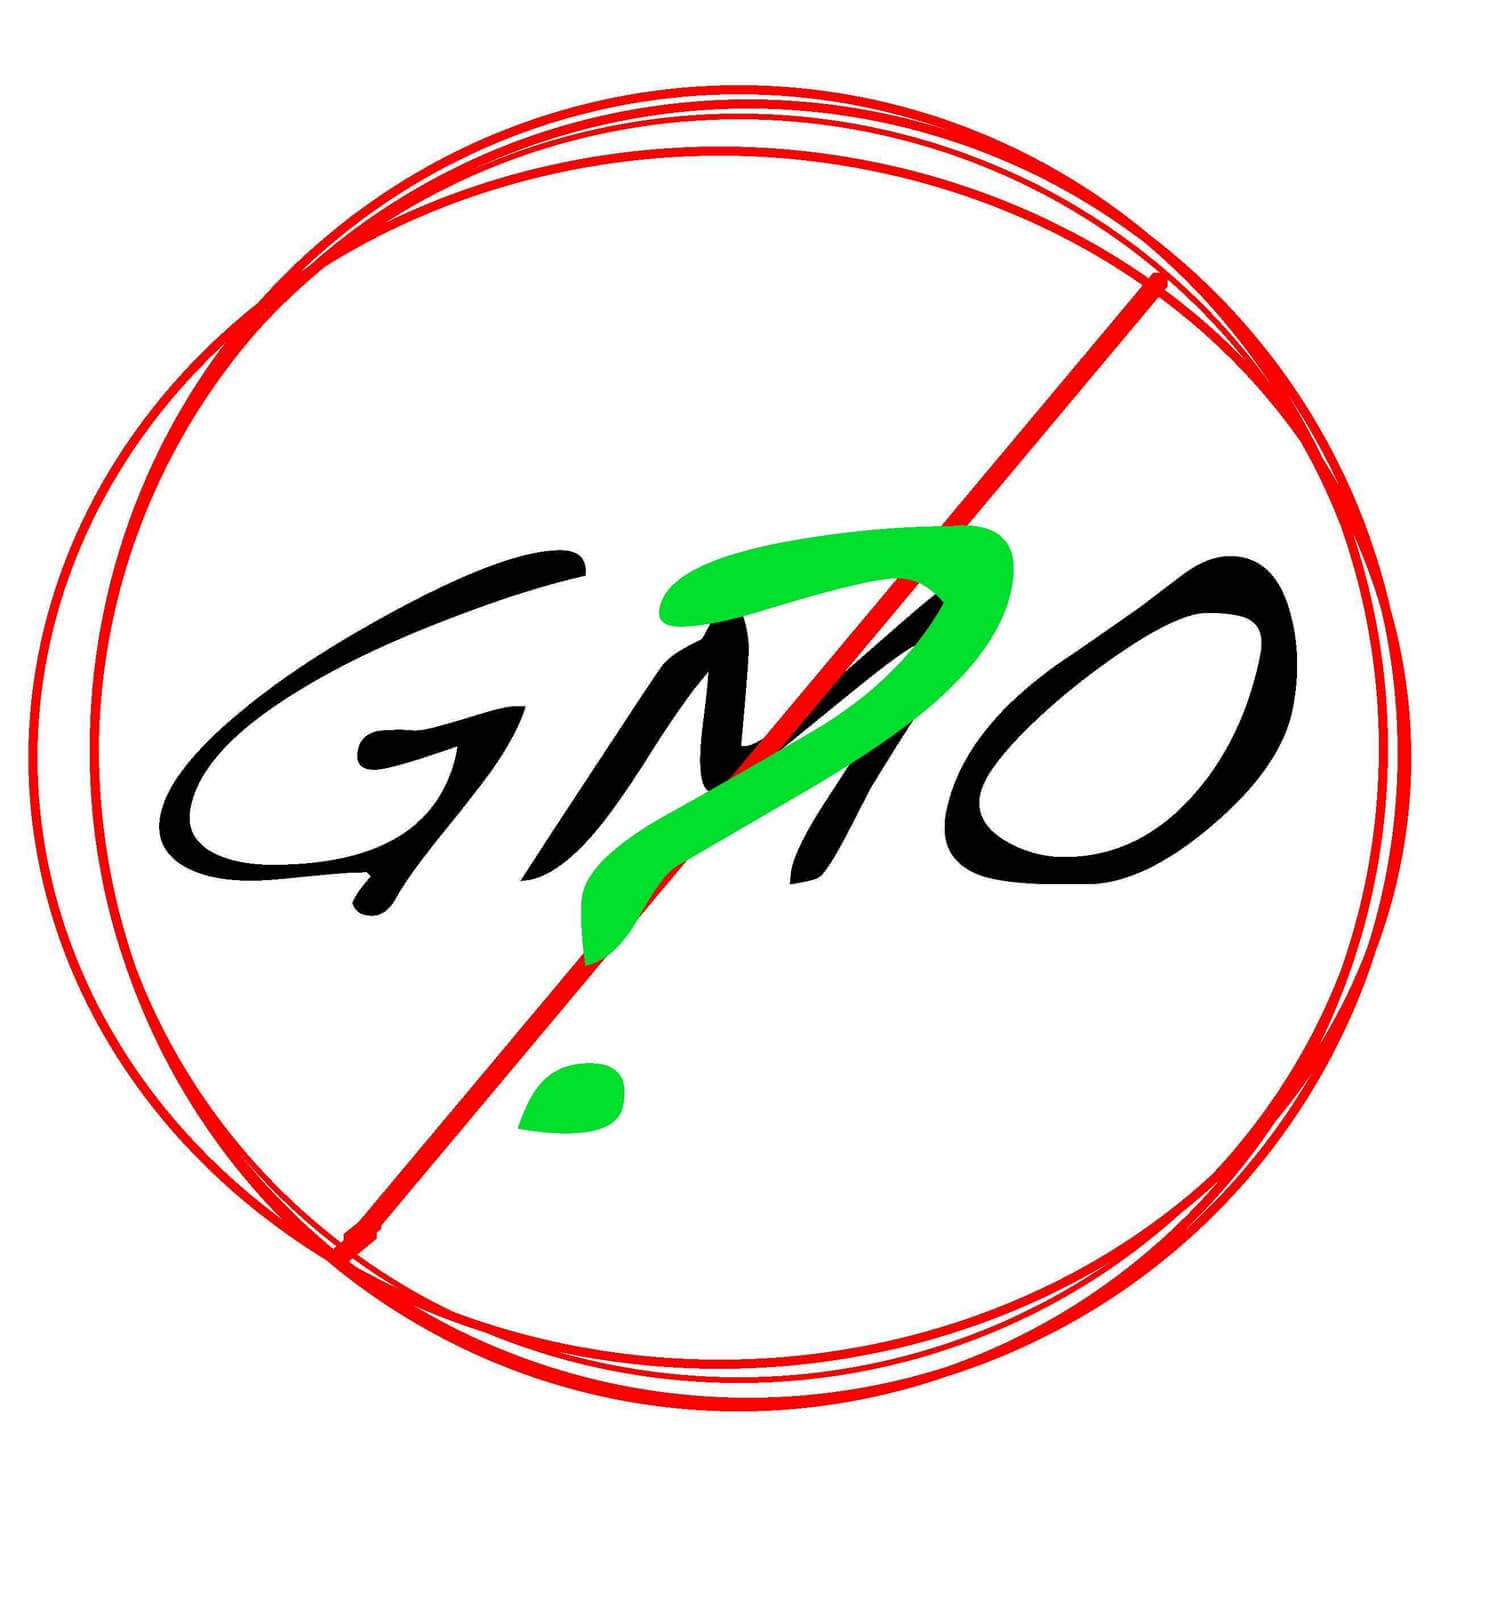 health risks by gm foods essay pros and cons of genetically modified foods hrfnd do gmo foods cause autism pros and cons of genetically modified foods hrfnd do gmo foods cause autism